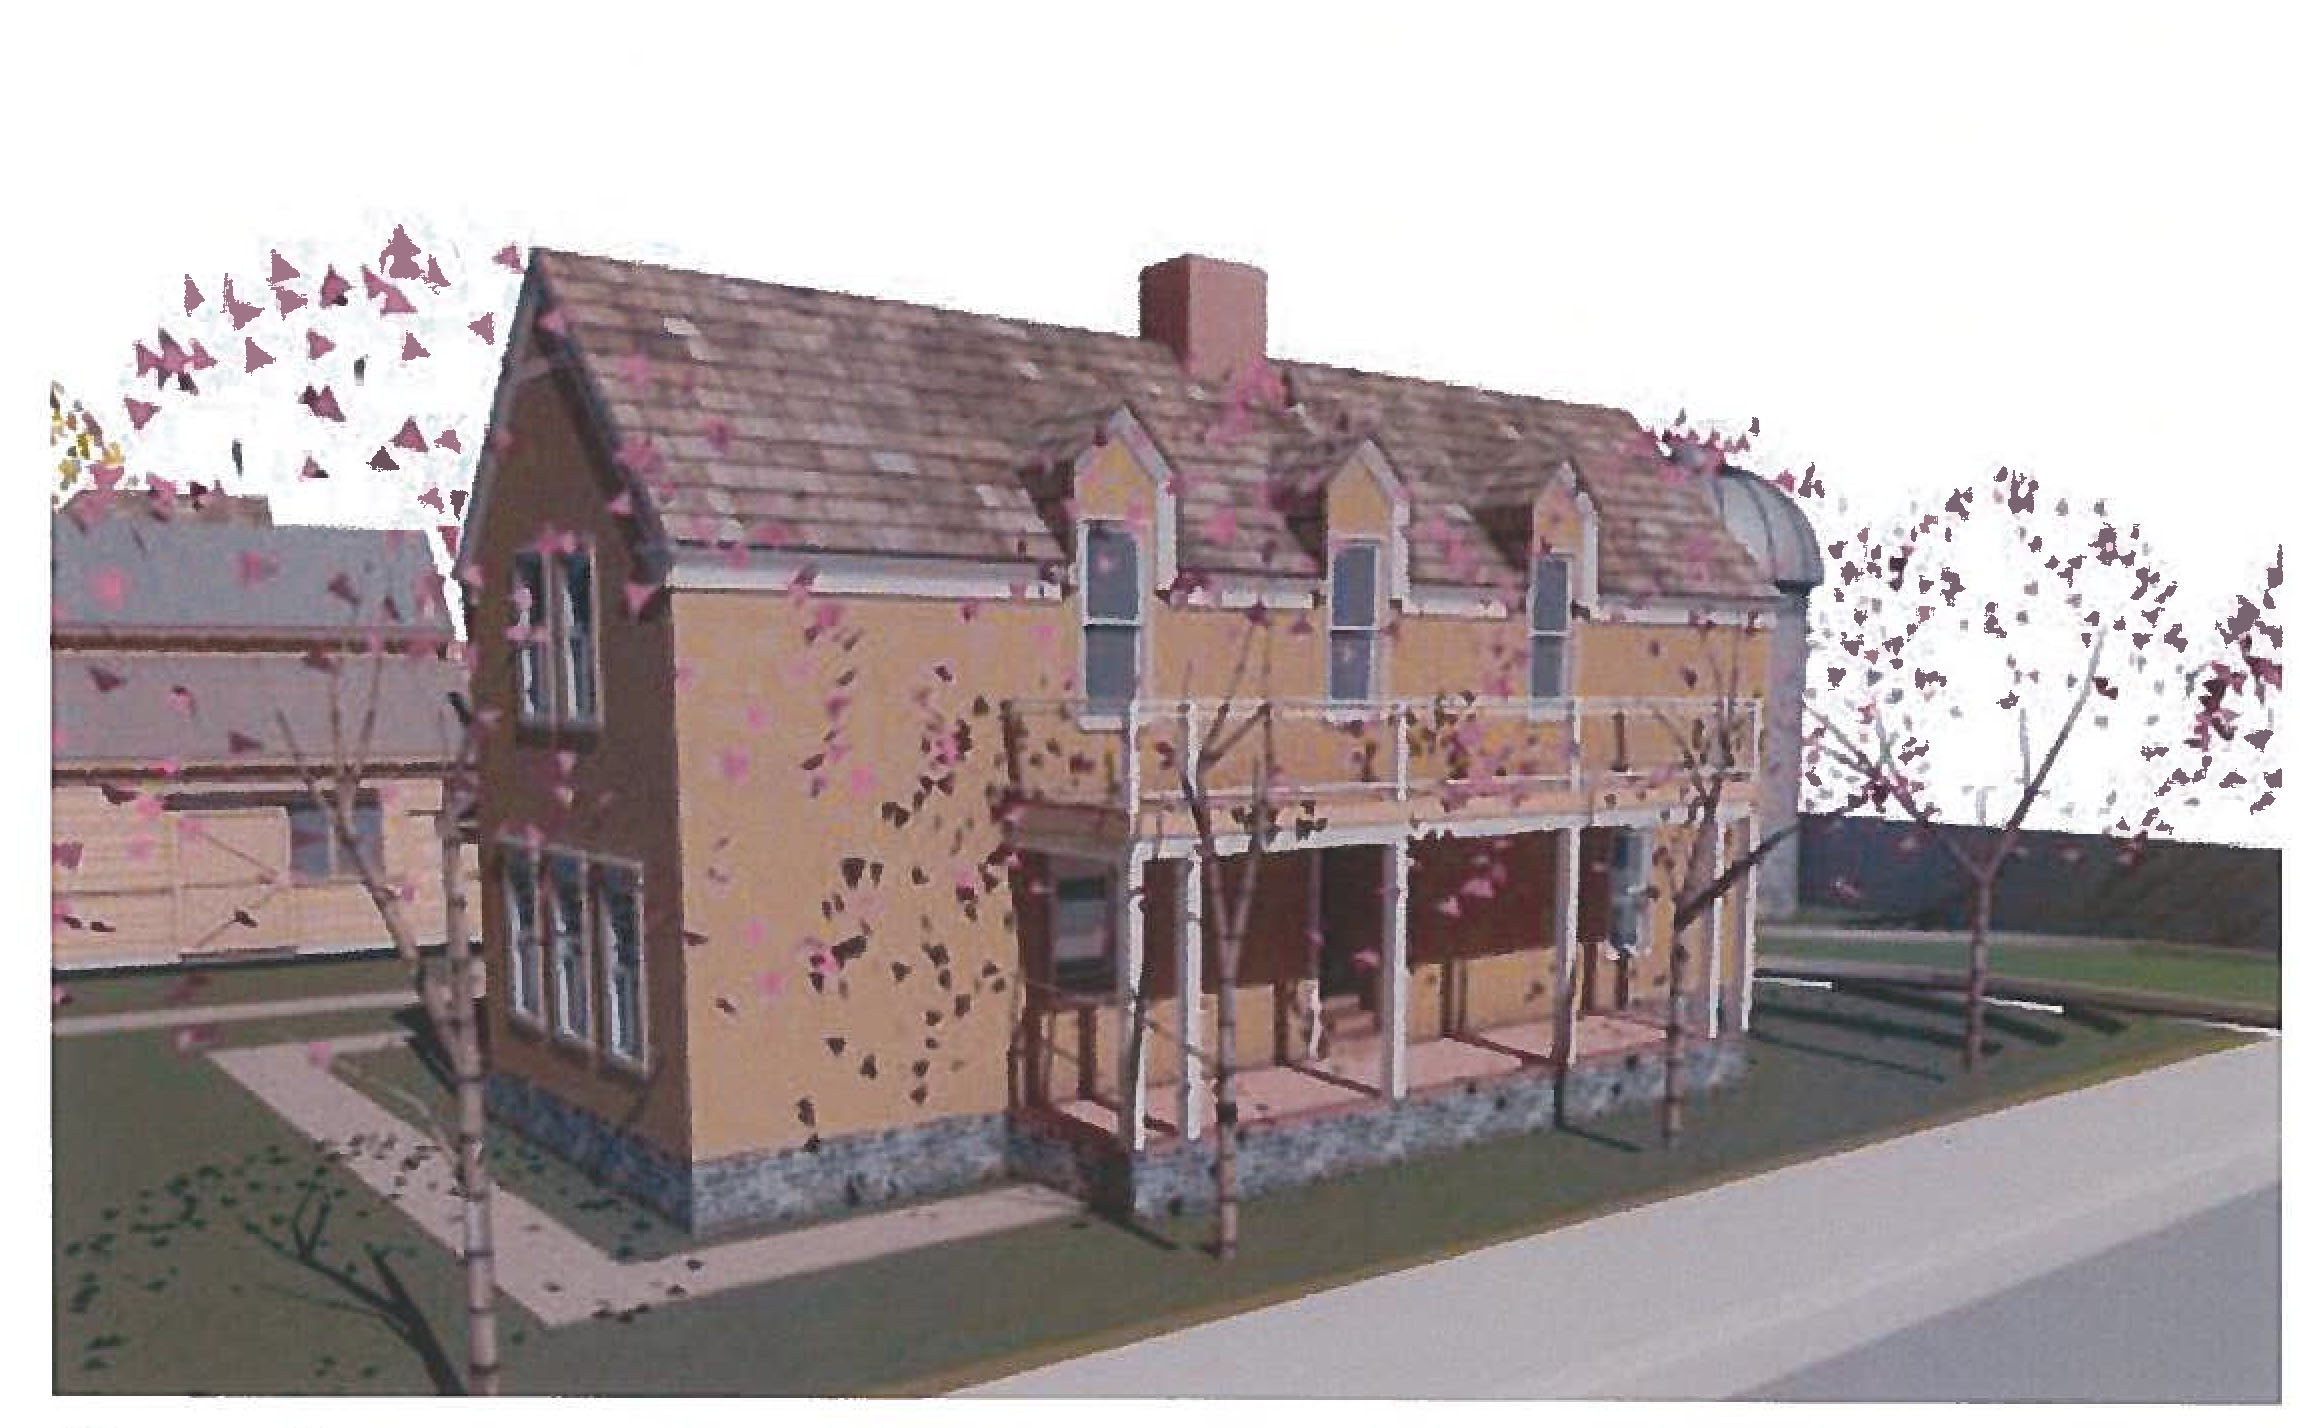 Architectural drawing of a proposed inn in Santa Clara | Image courtesy of Santa Clara City